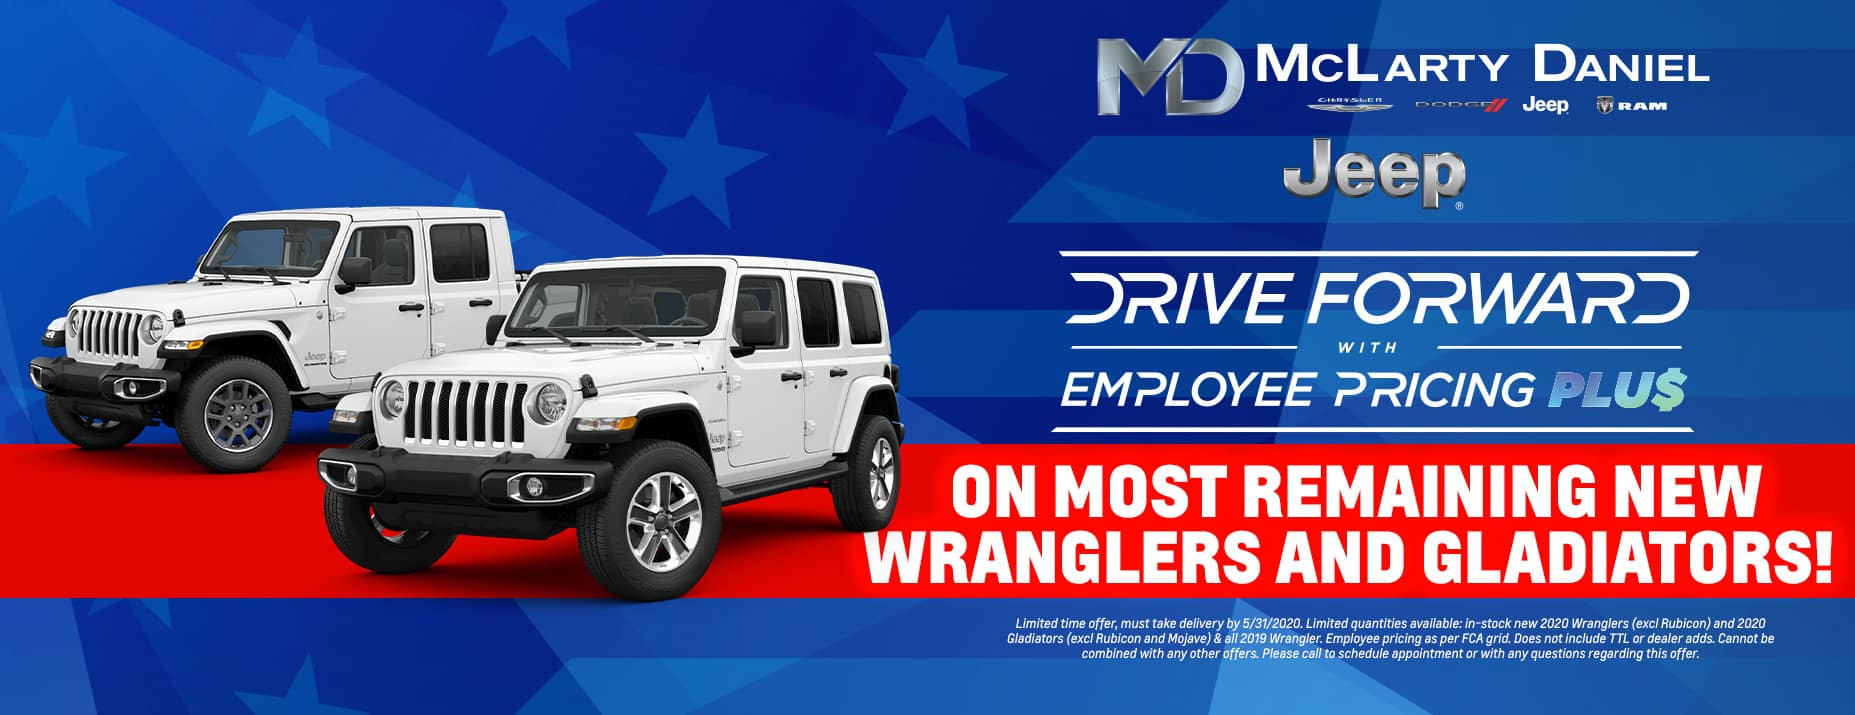 Get EMPLOYEE PRICING on mostremaining new Wranglers and Gladiators!